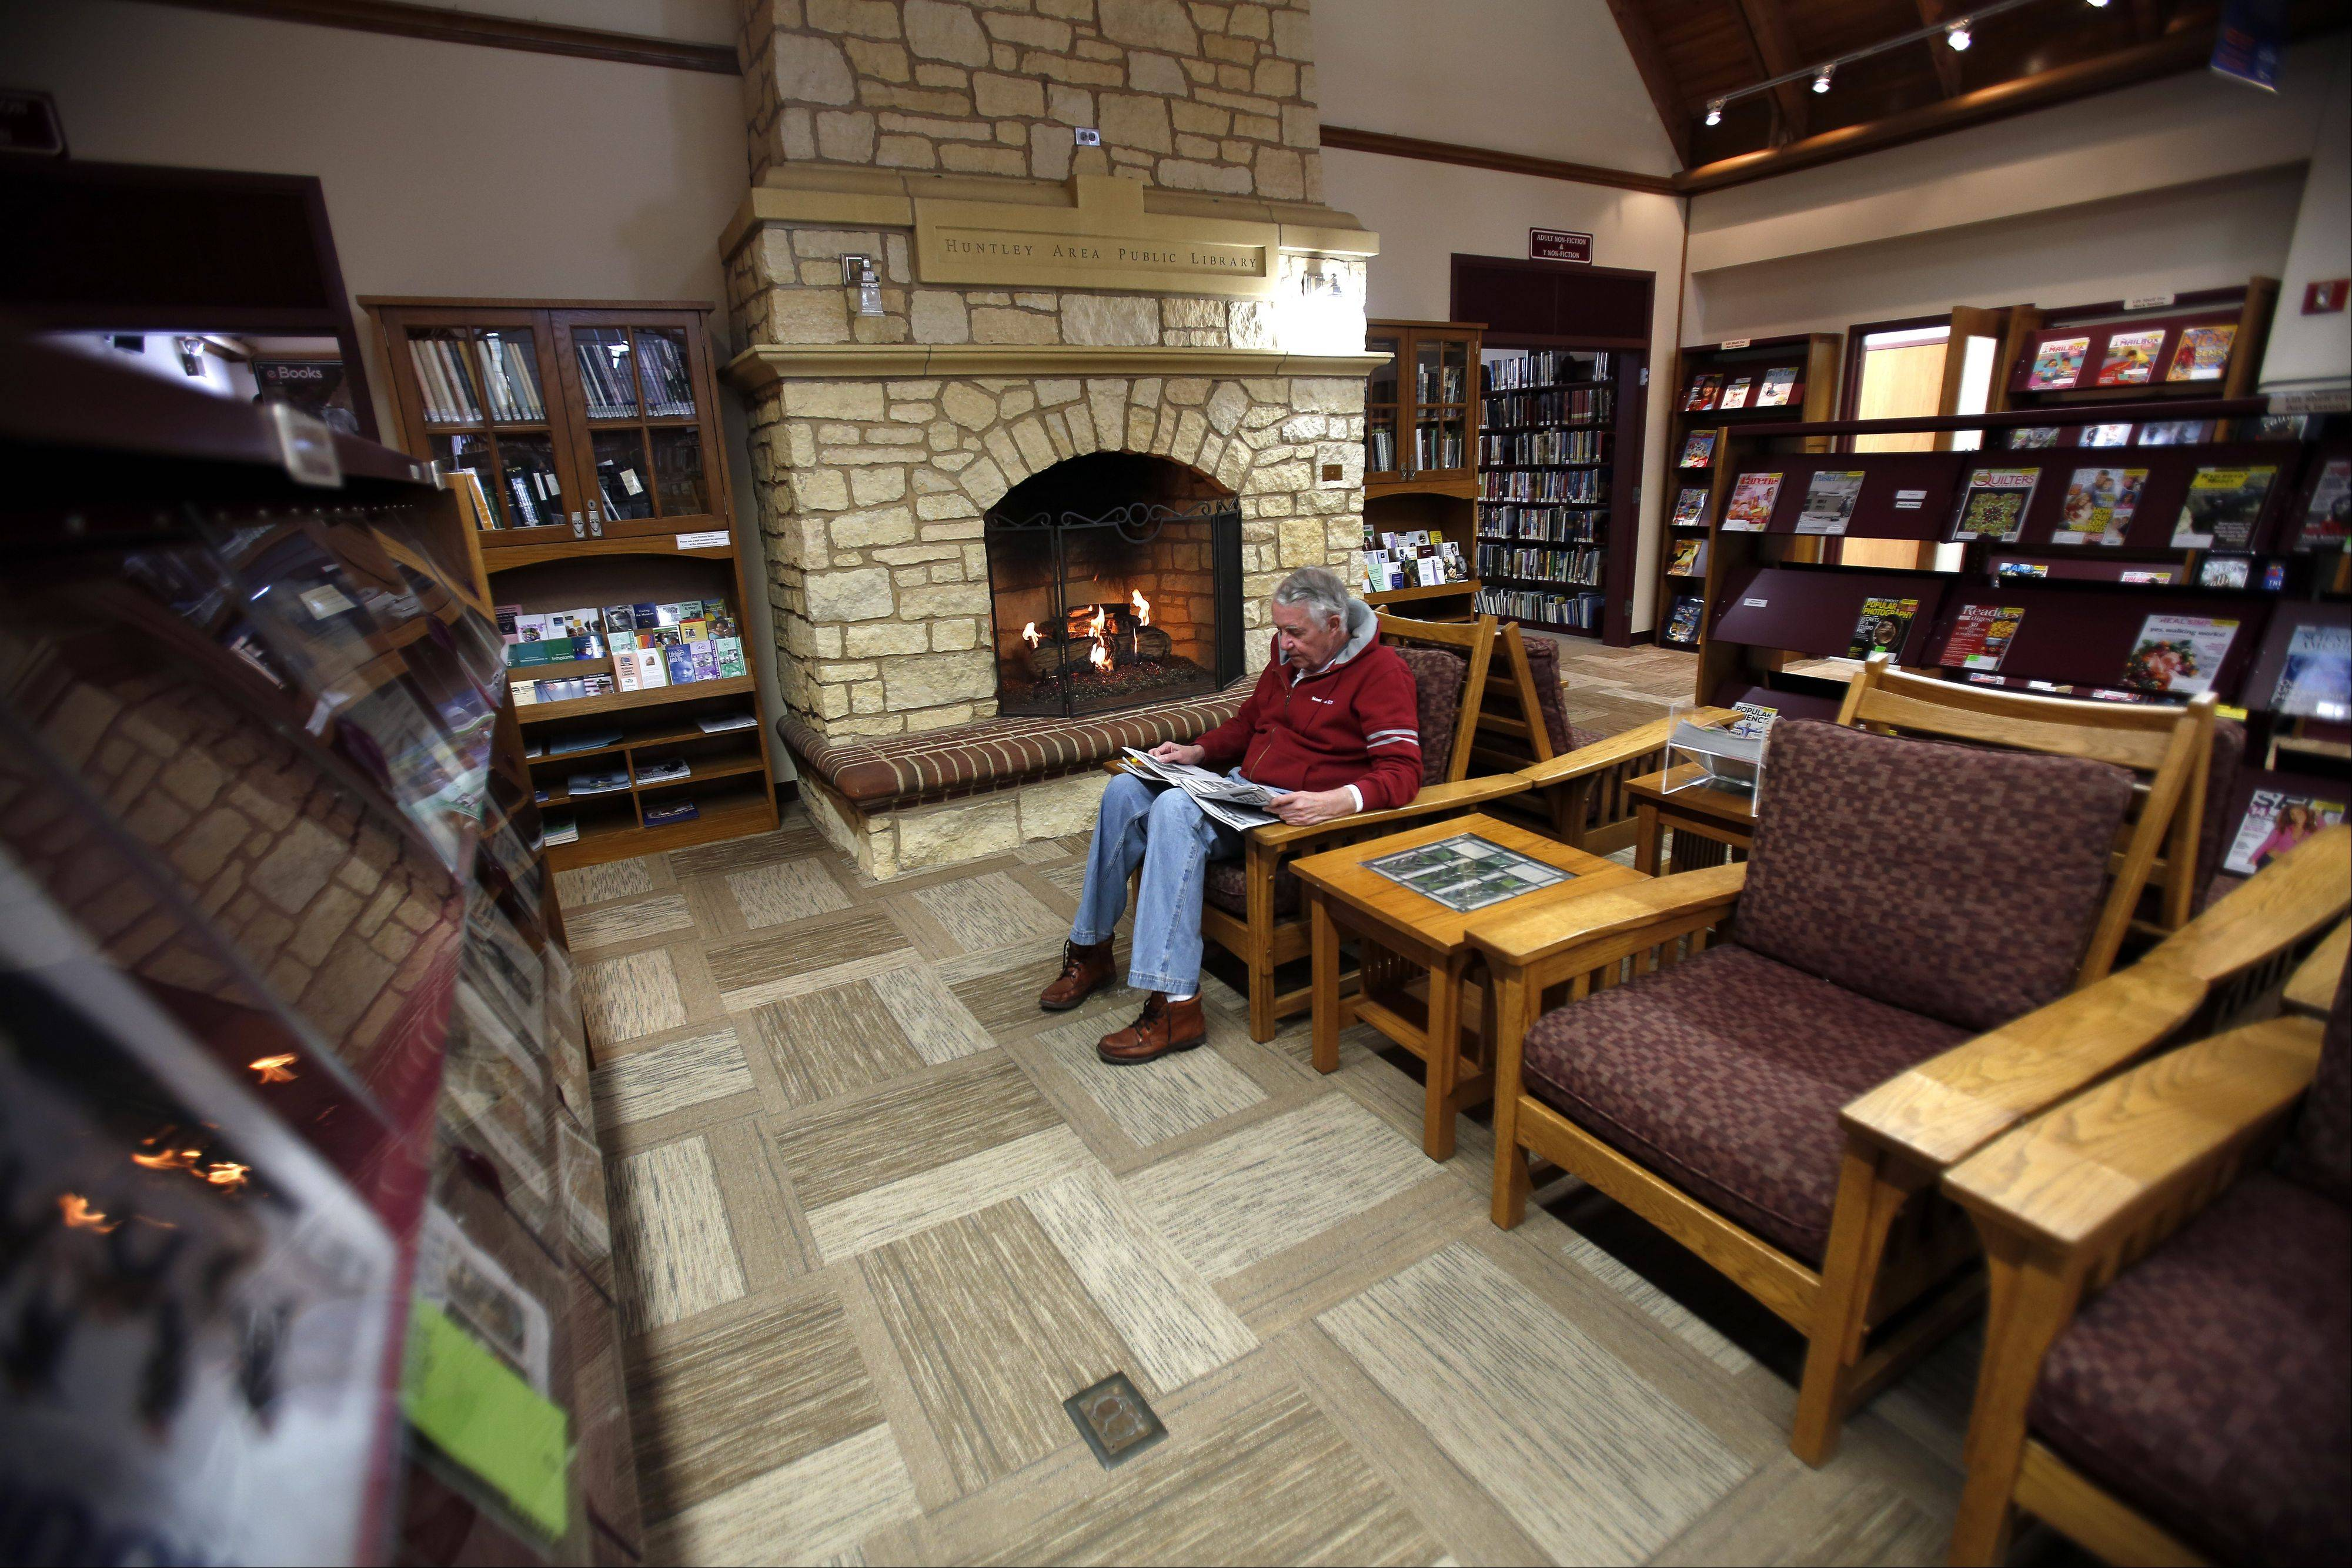 John Cox of Huntley enjoys a newspaper in front of the signature fireplace at the Huntley Area Public Library, which celebrates its 25th anniversary this year.